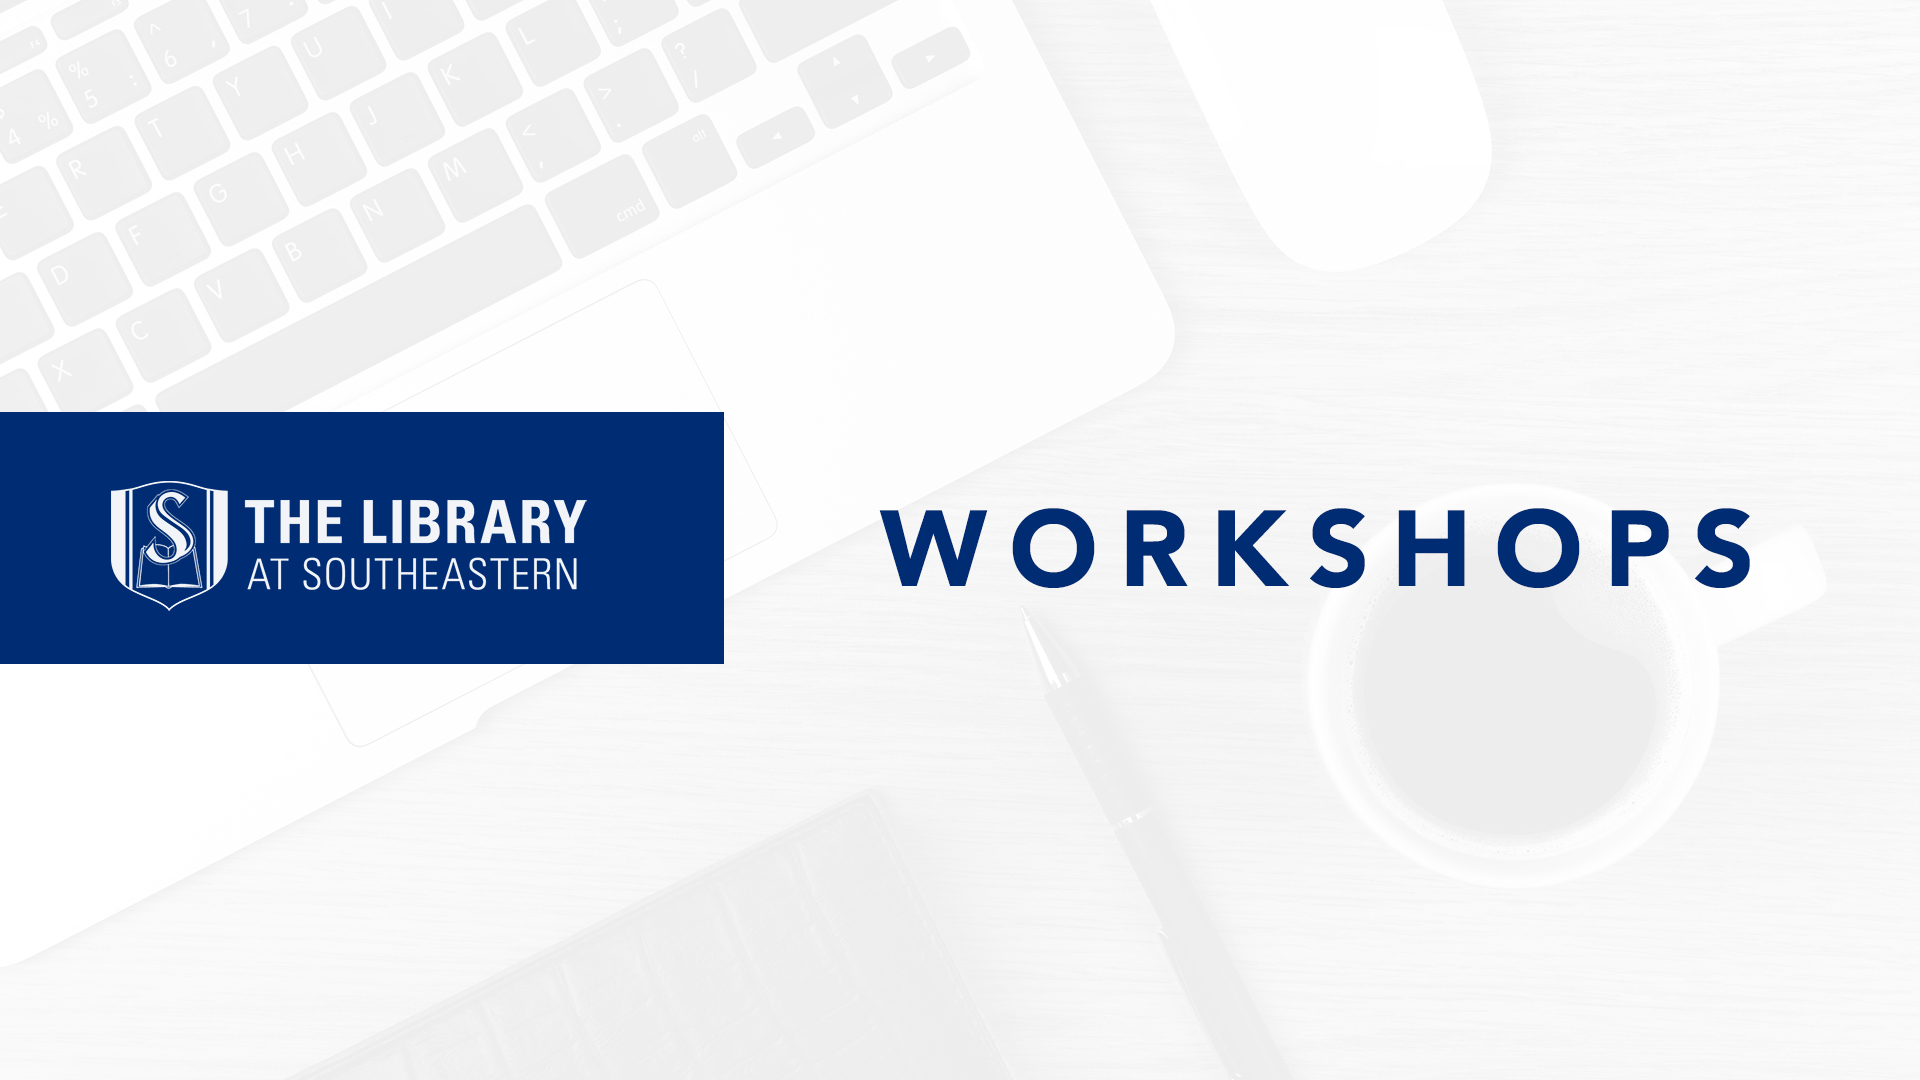 Library Workshop: Learning Biblical Languages